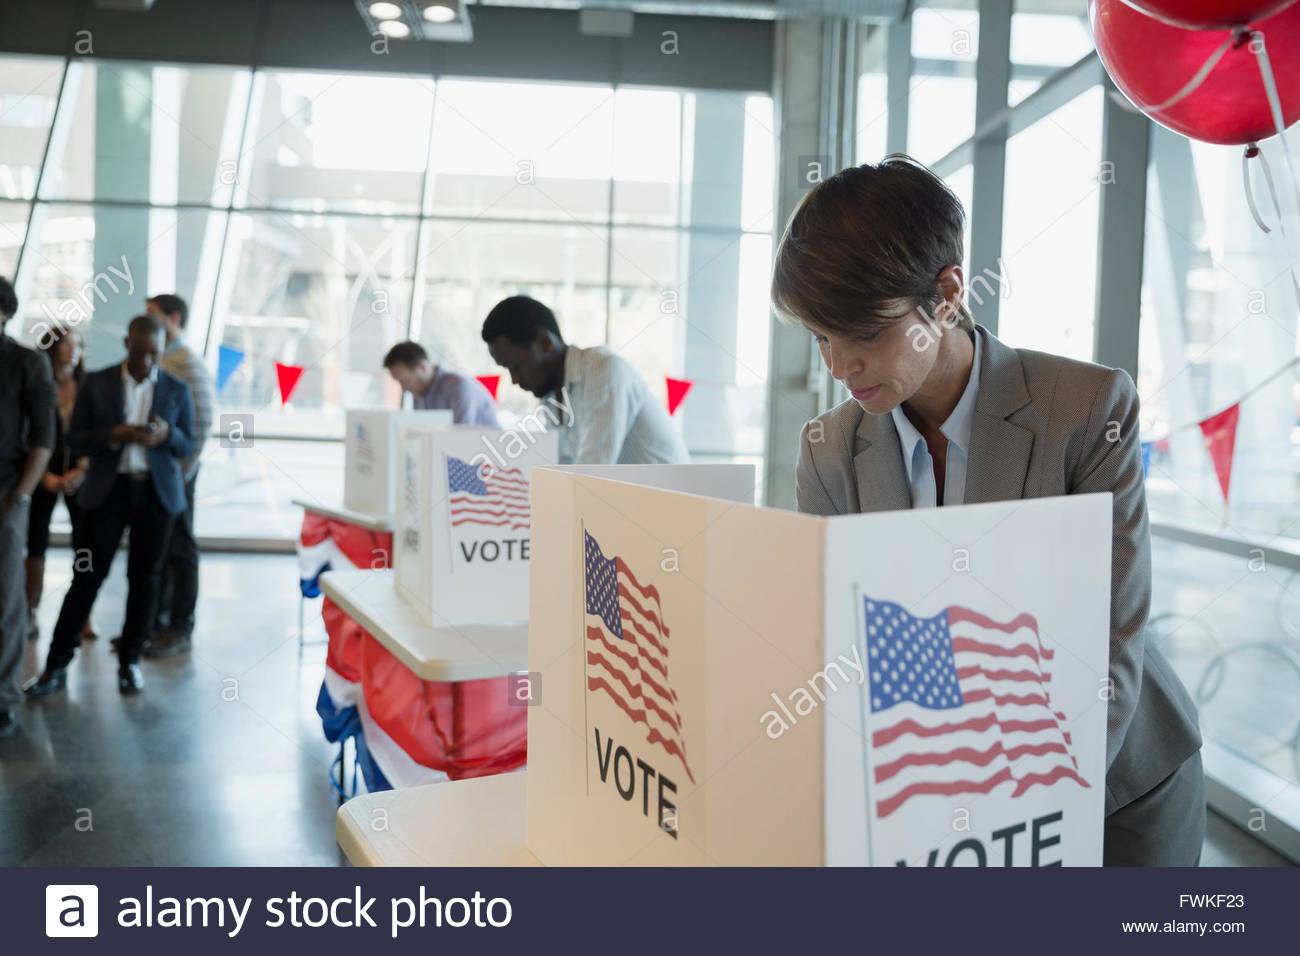 Woman in voting booth at polling place - Stock Image